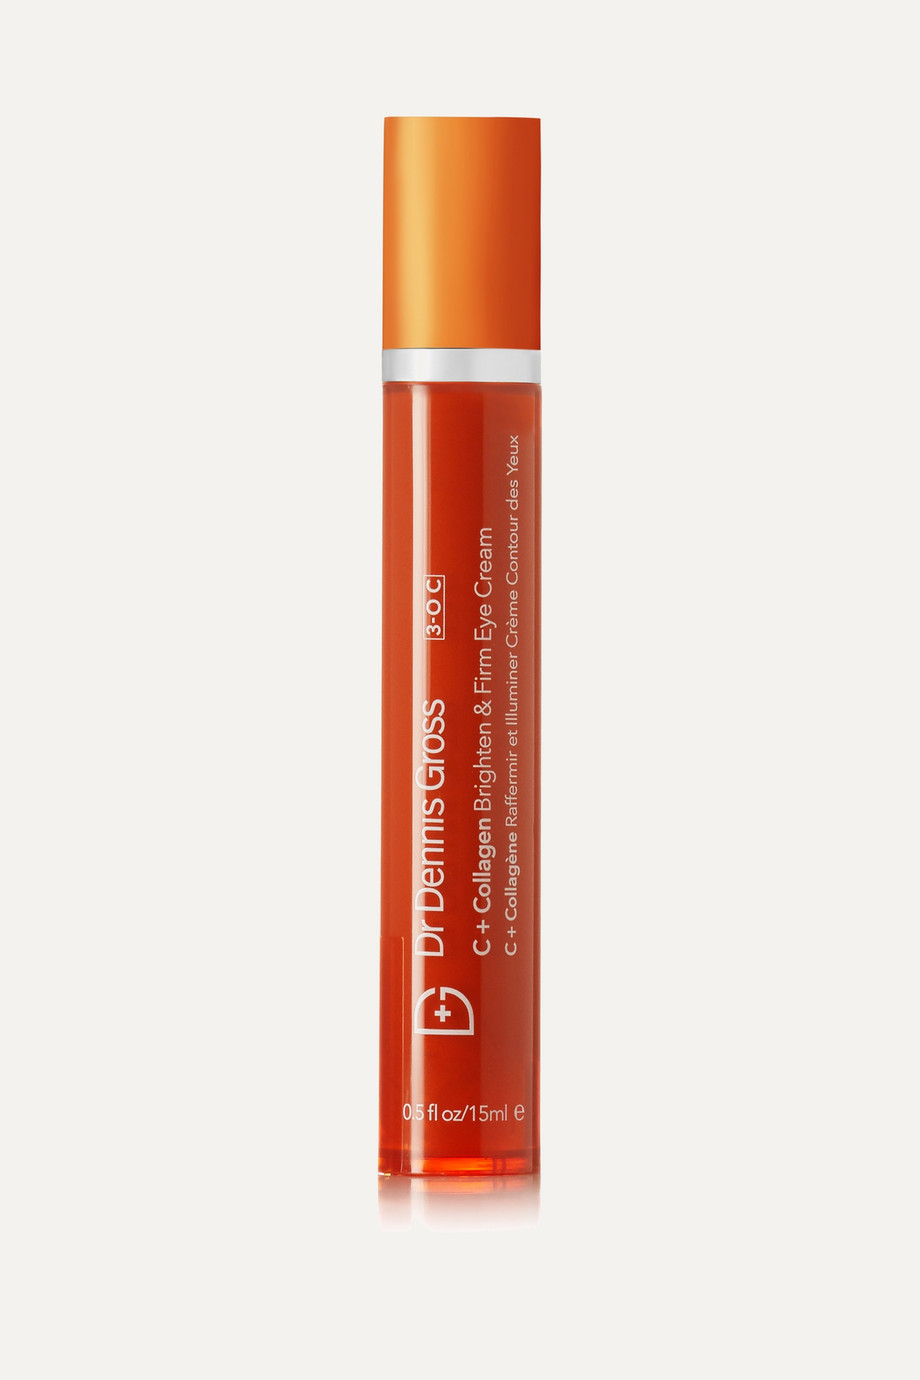 Dr. Dennis Gross Skincare C+ Collagen Brighten & Firm Eye Cream, 15ml